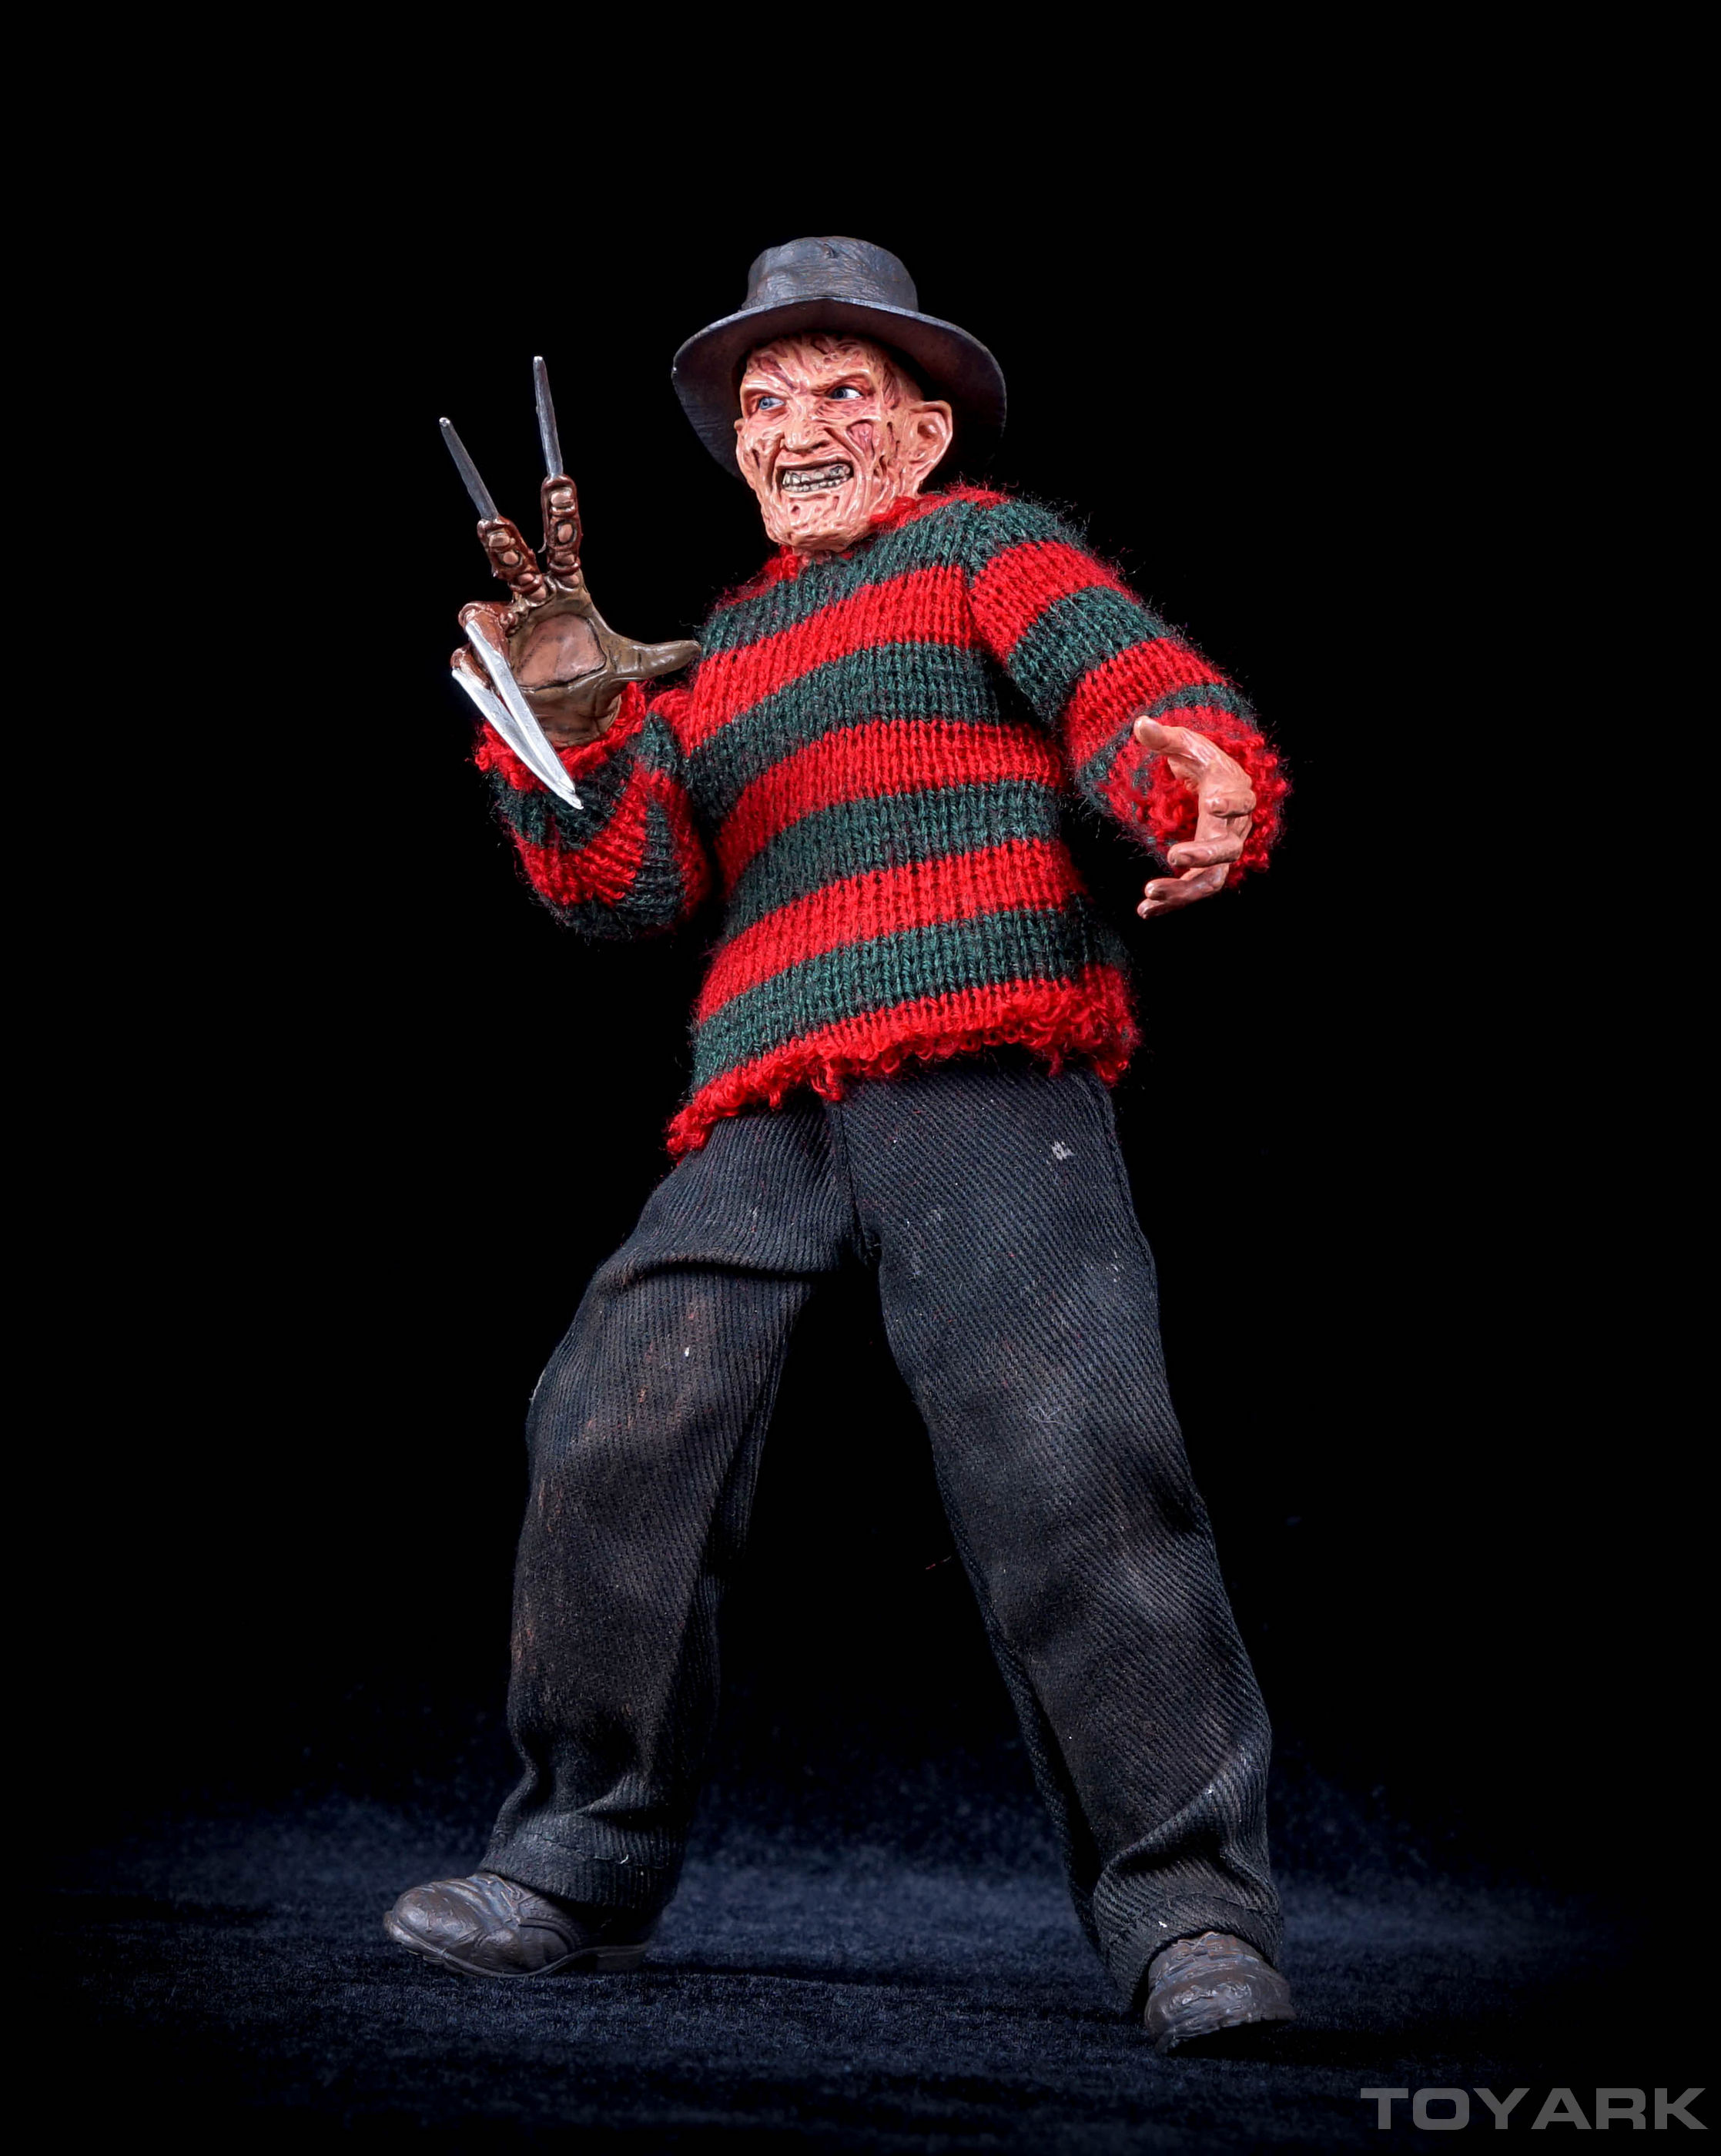 http://news.toyark.com/wp-content/uploads/sites/4/2015/10/NECA-Dream-Warriors-Retro-Freddy-020.jpg